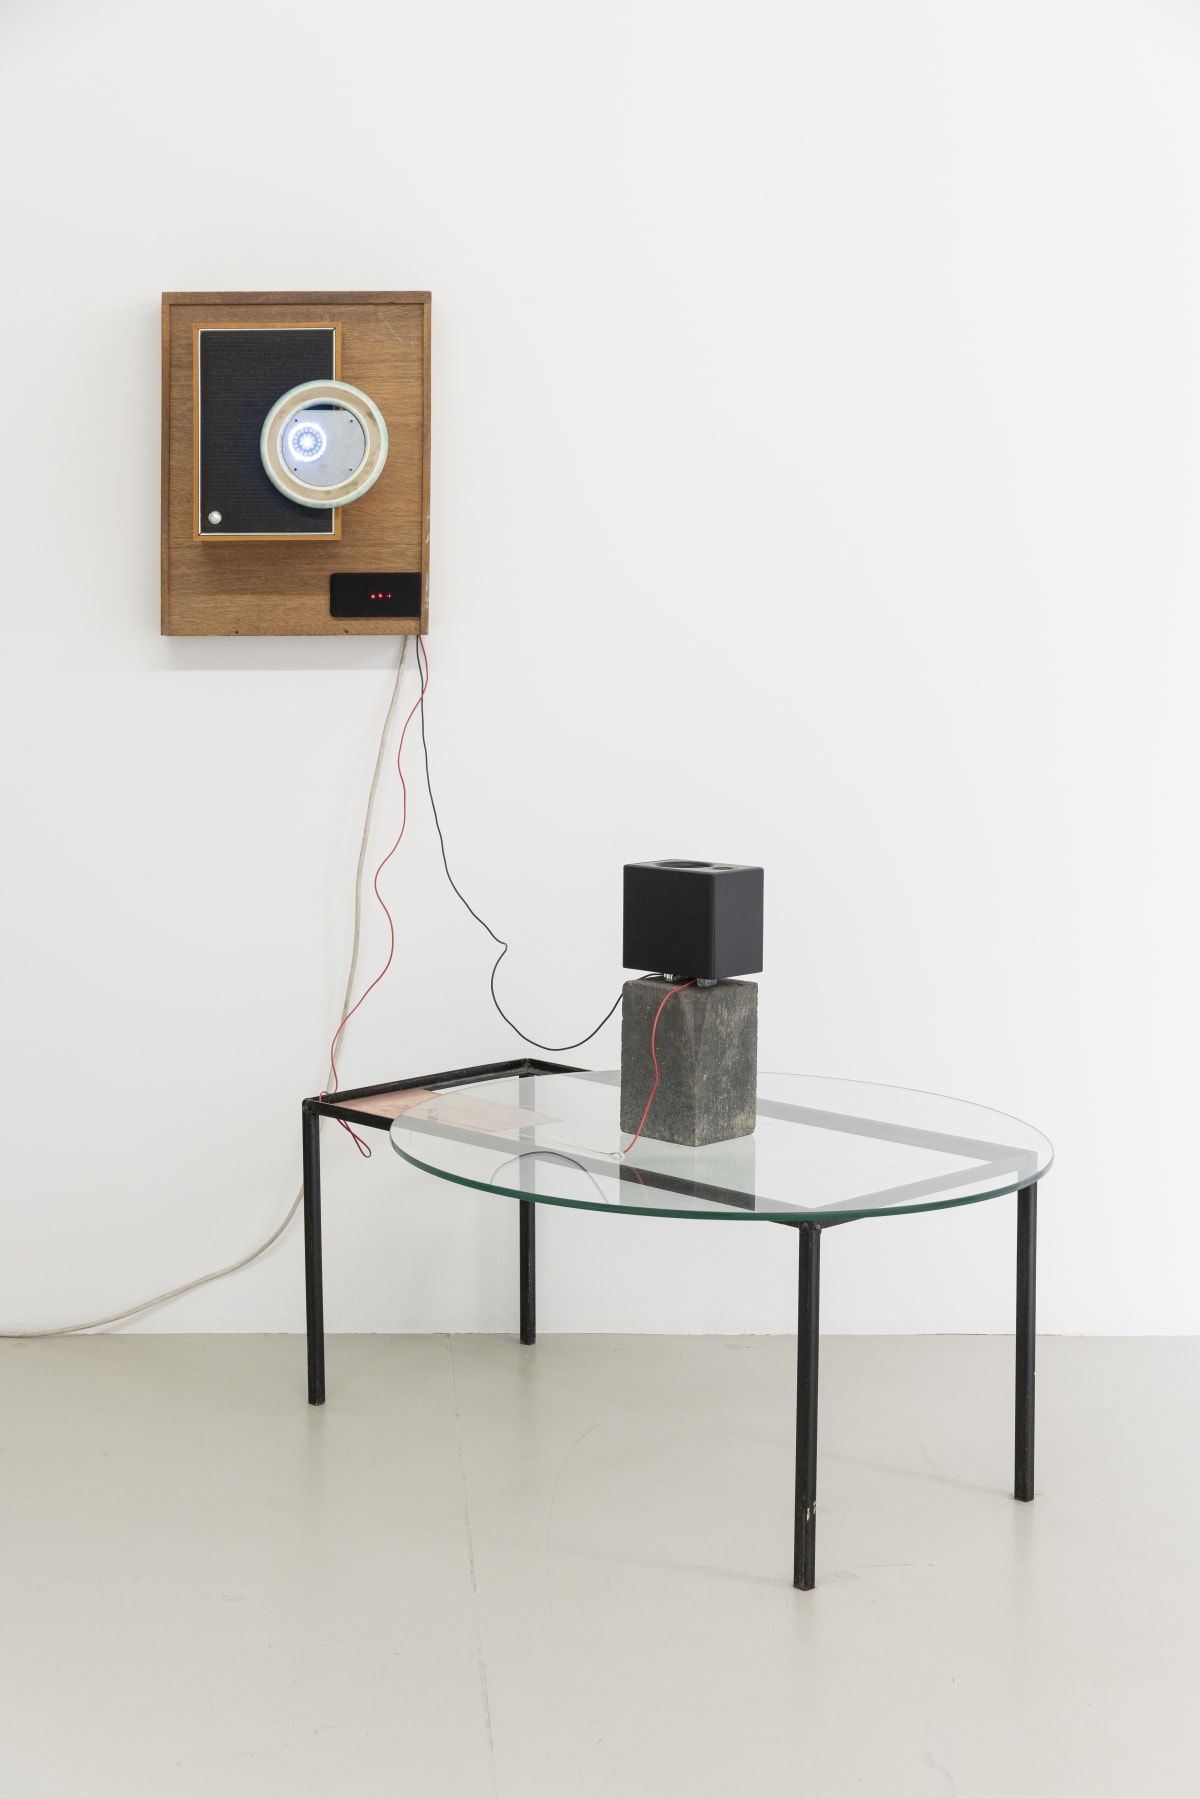 Haroon Mirza, Untitled Song #2, 2012